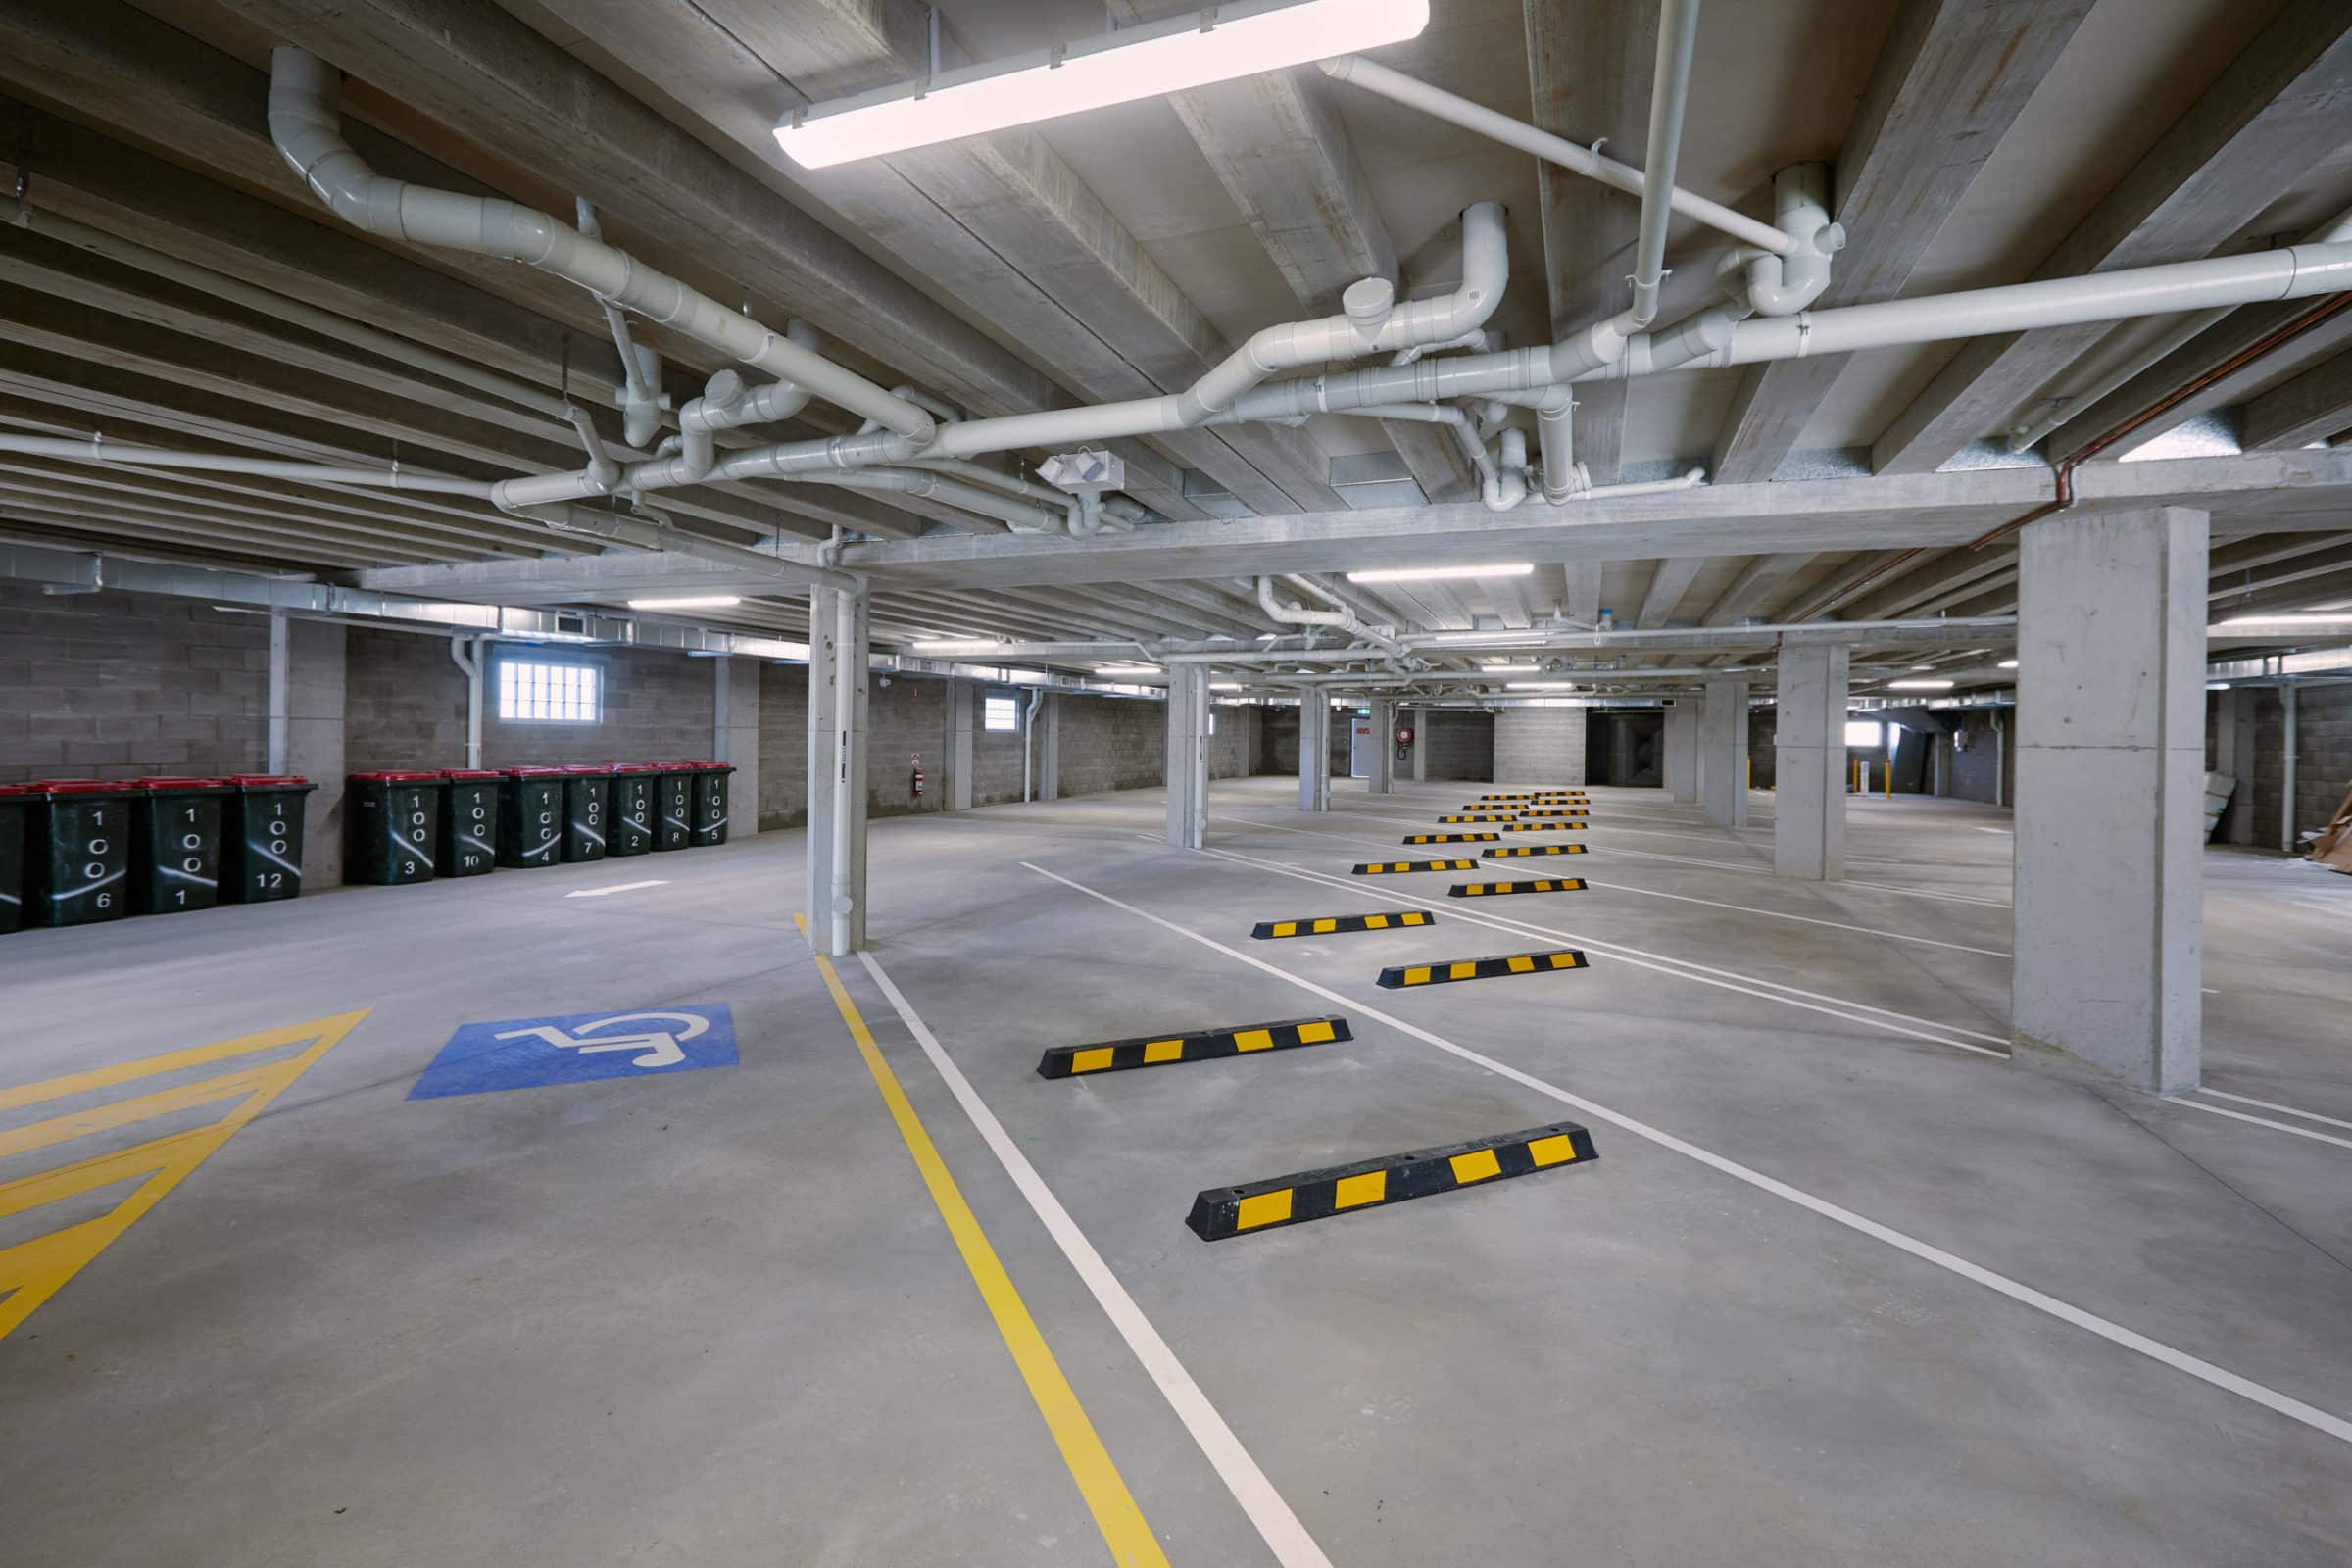 East Maitland Executive Apartments - https://www.newcastleapartments.com.au/wp-content/uploads/2020/03/undercover-parking-2-scaled.jpg